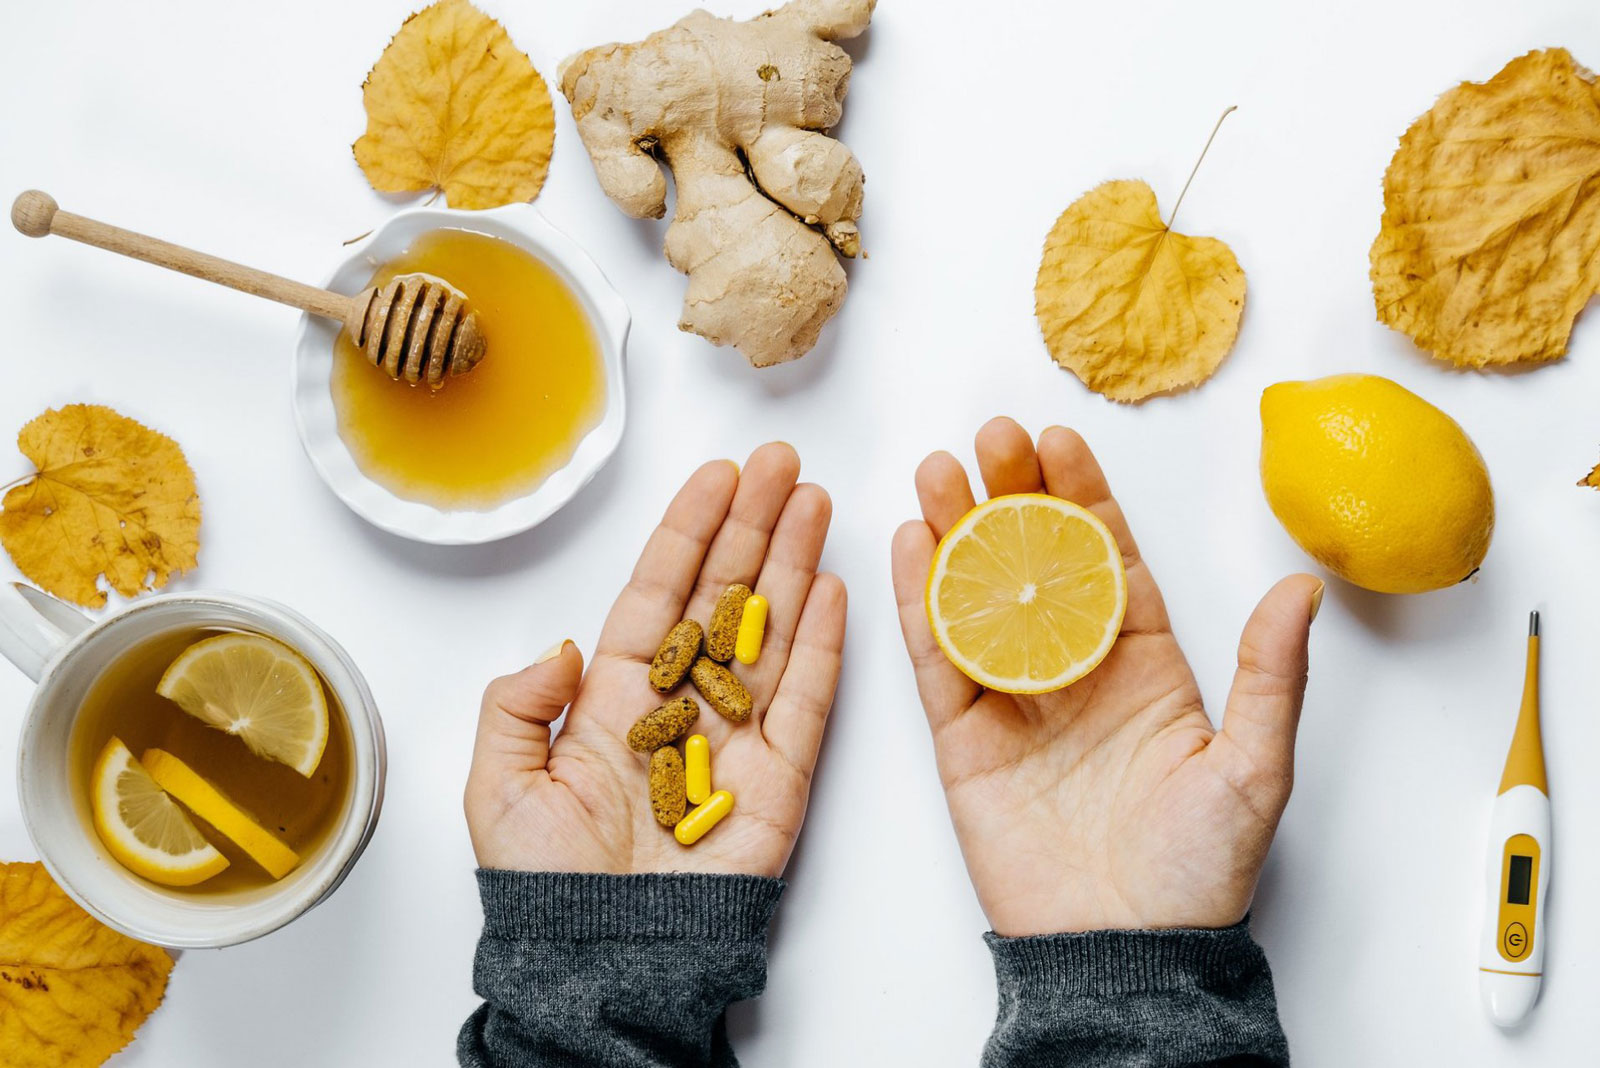 Ginger and Lemon | 10 Natural Remedies For Common Pregnancy Symptoms